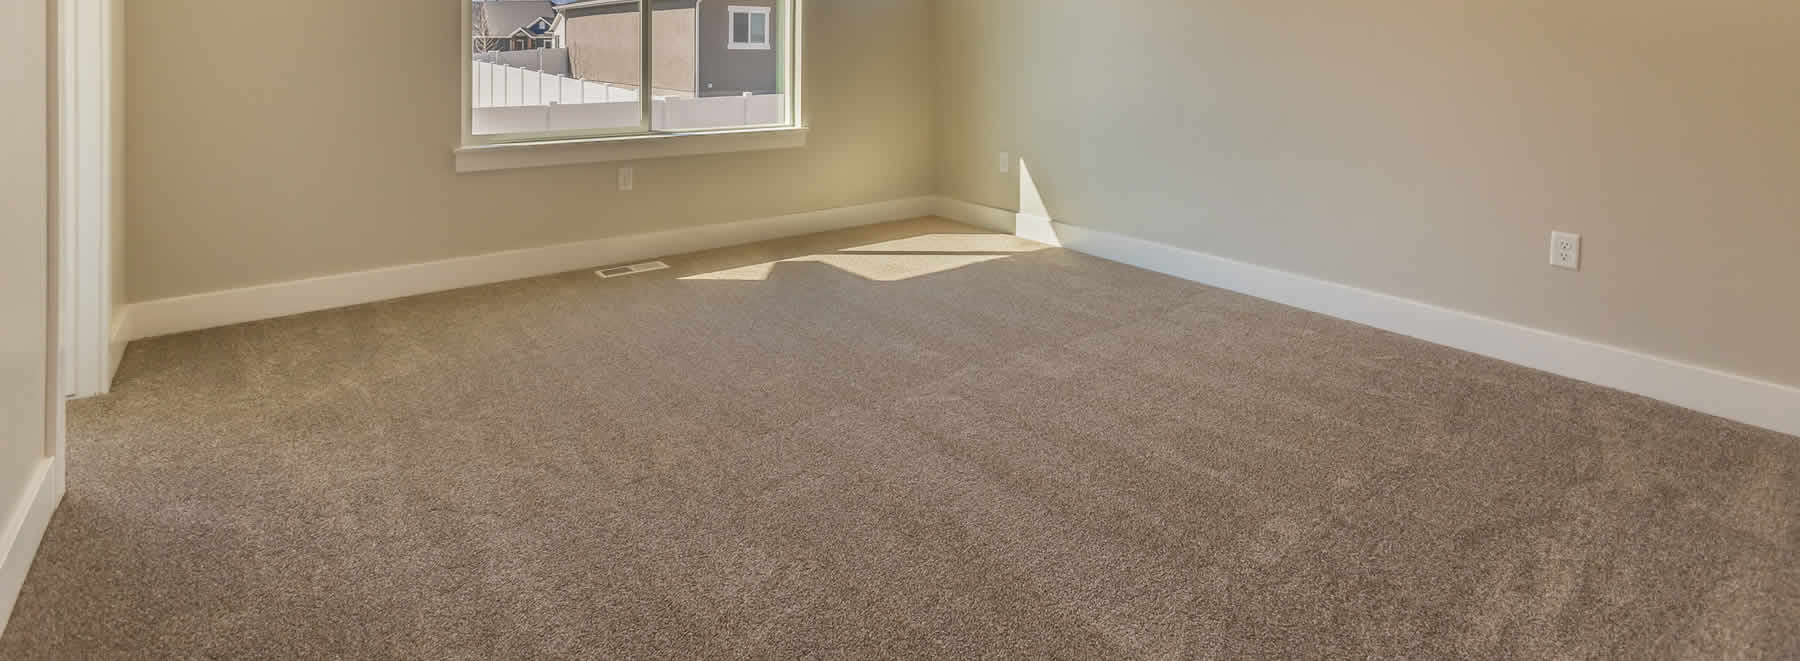 Great carpeting for your Detroit Lakes home.